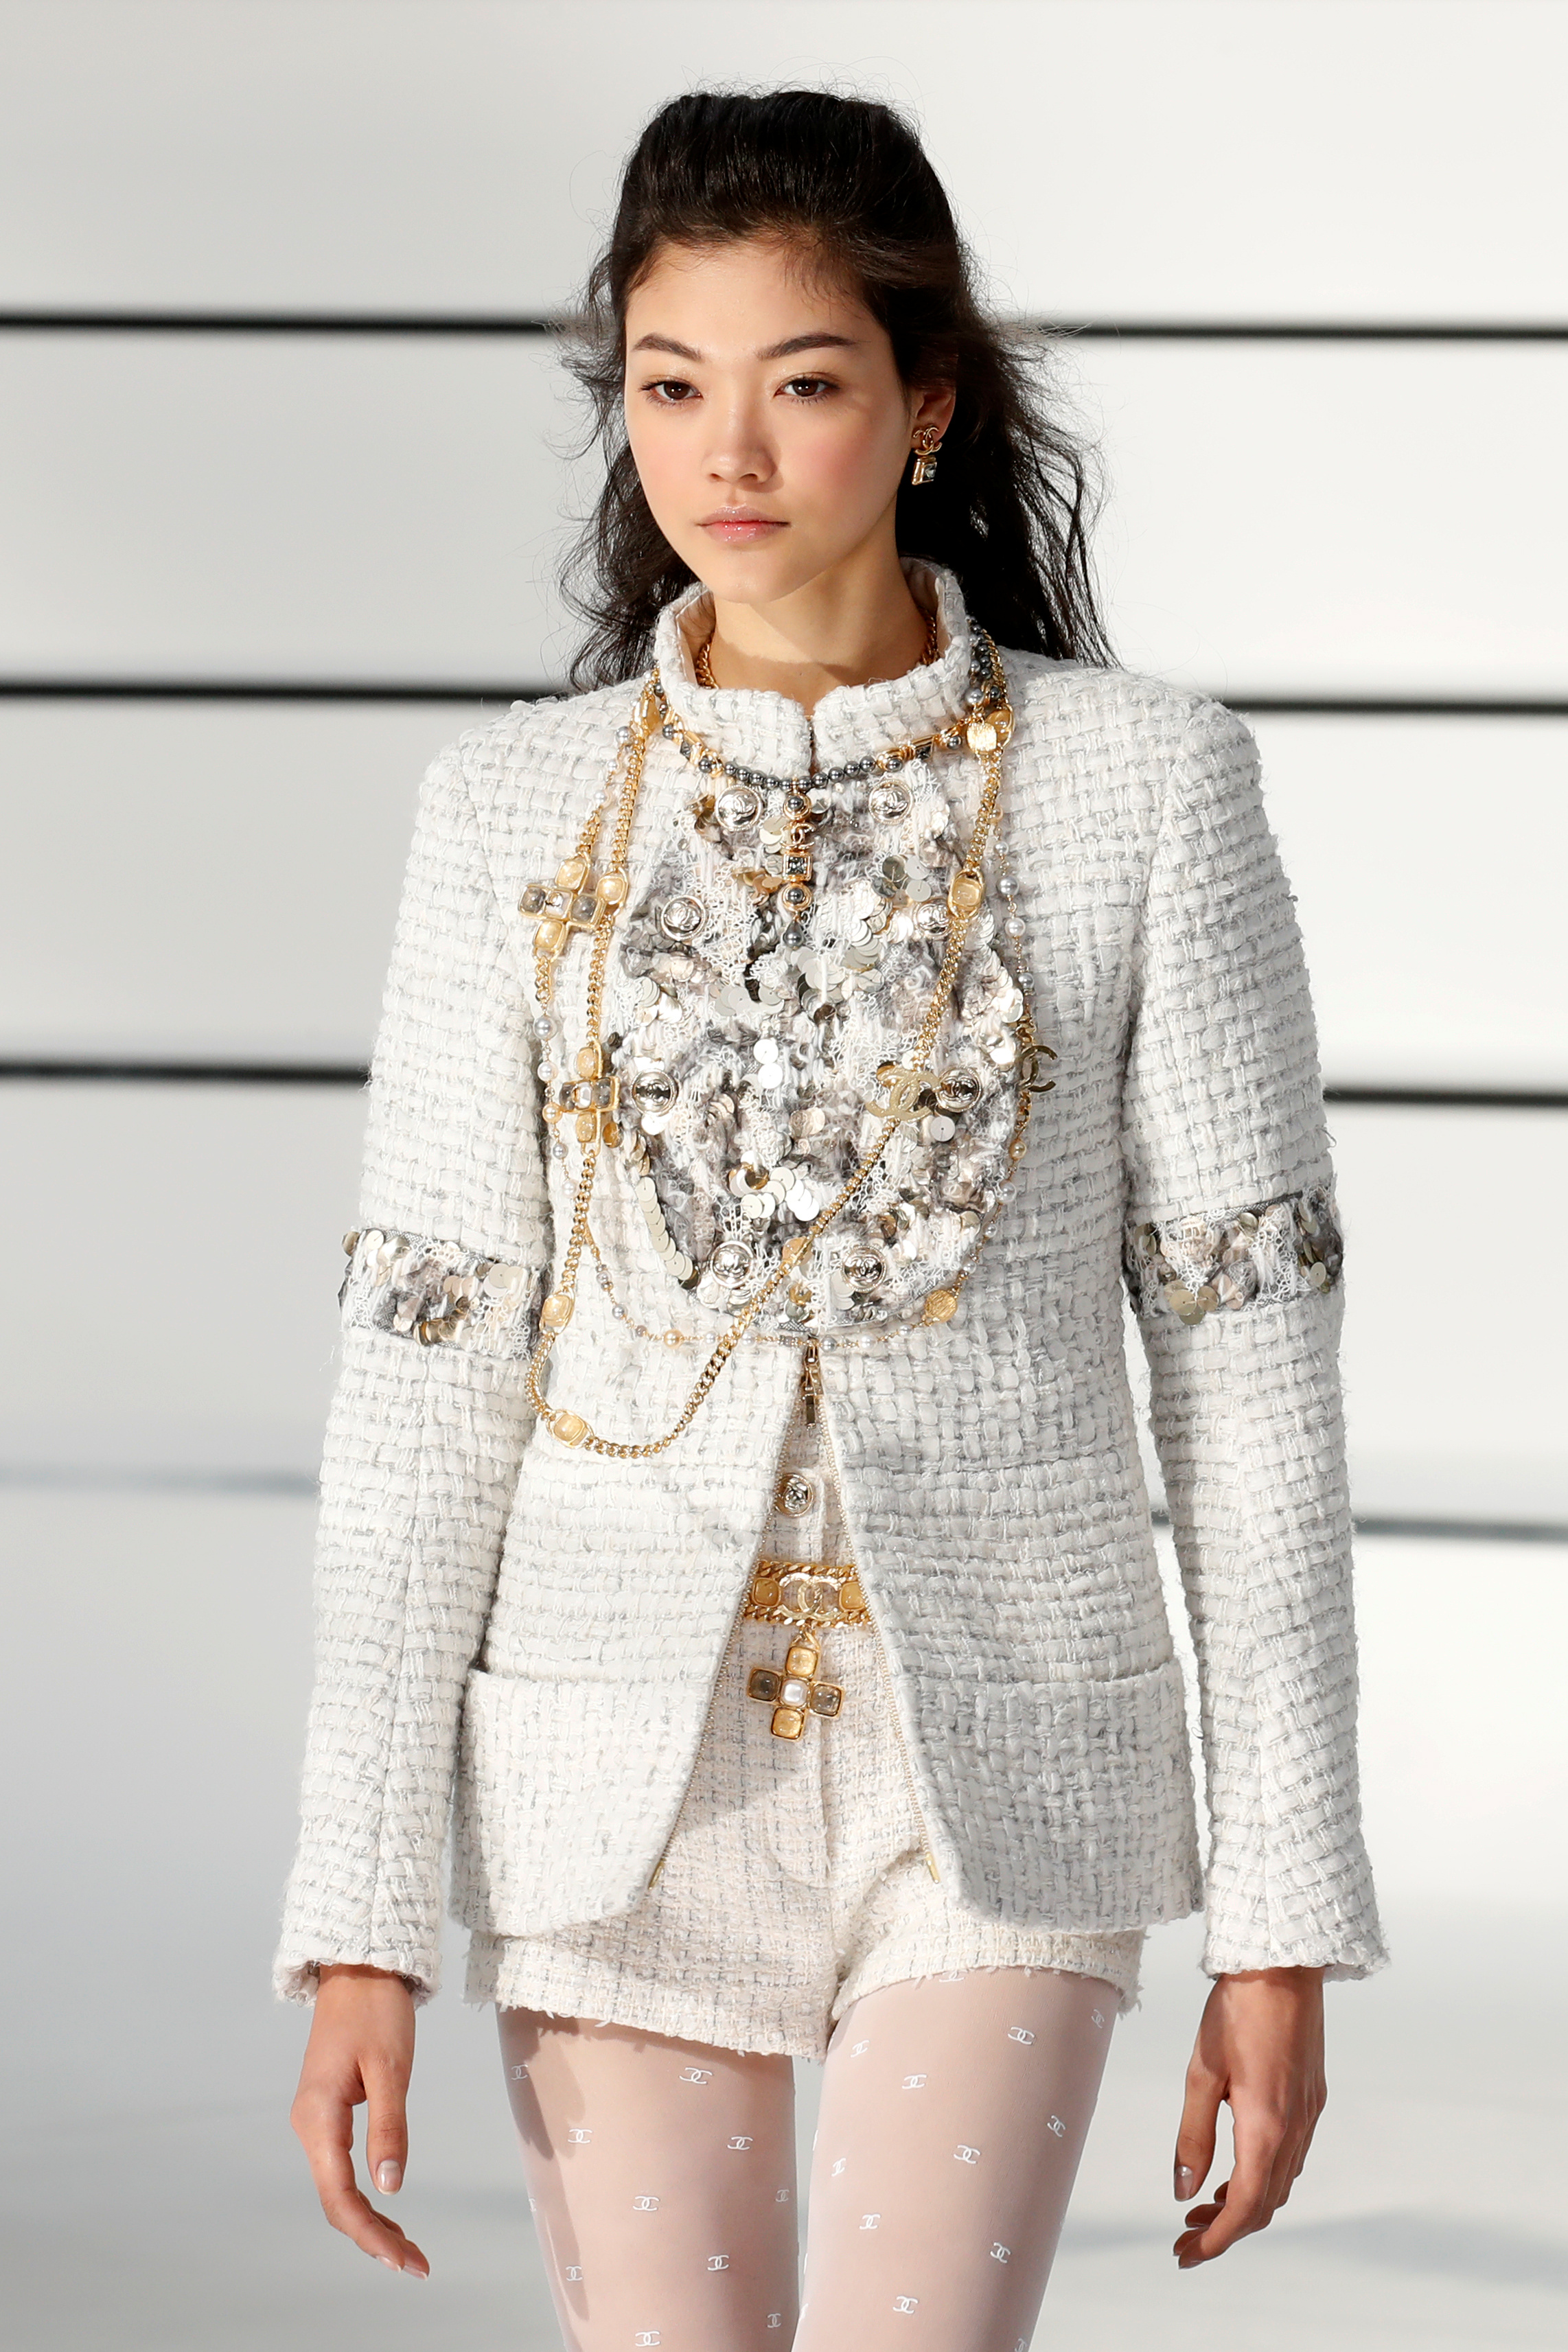 Chanel AW 2020/2021